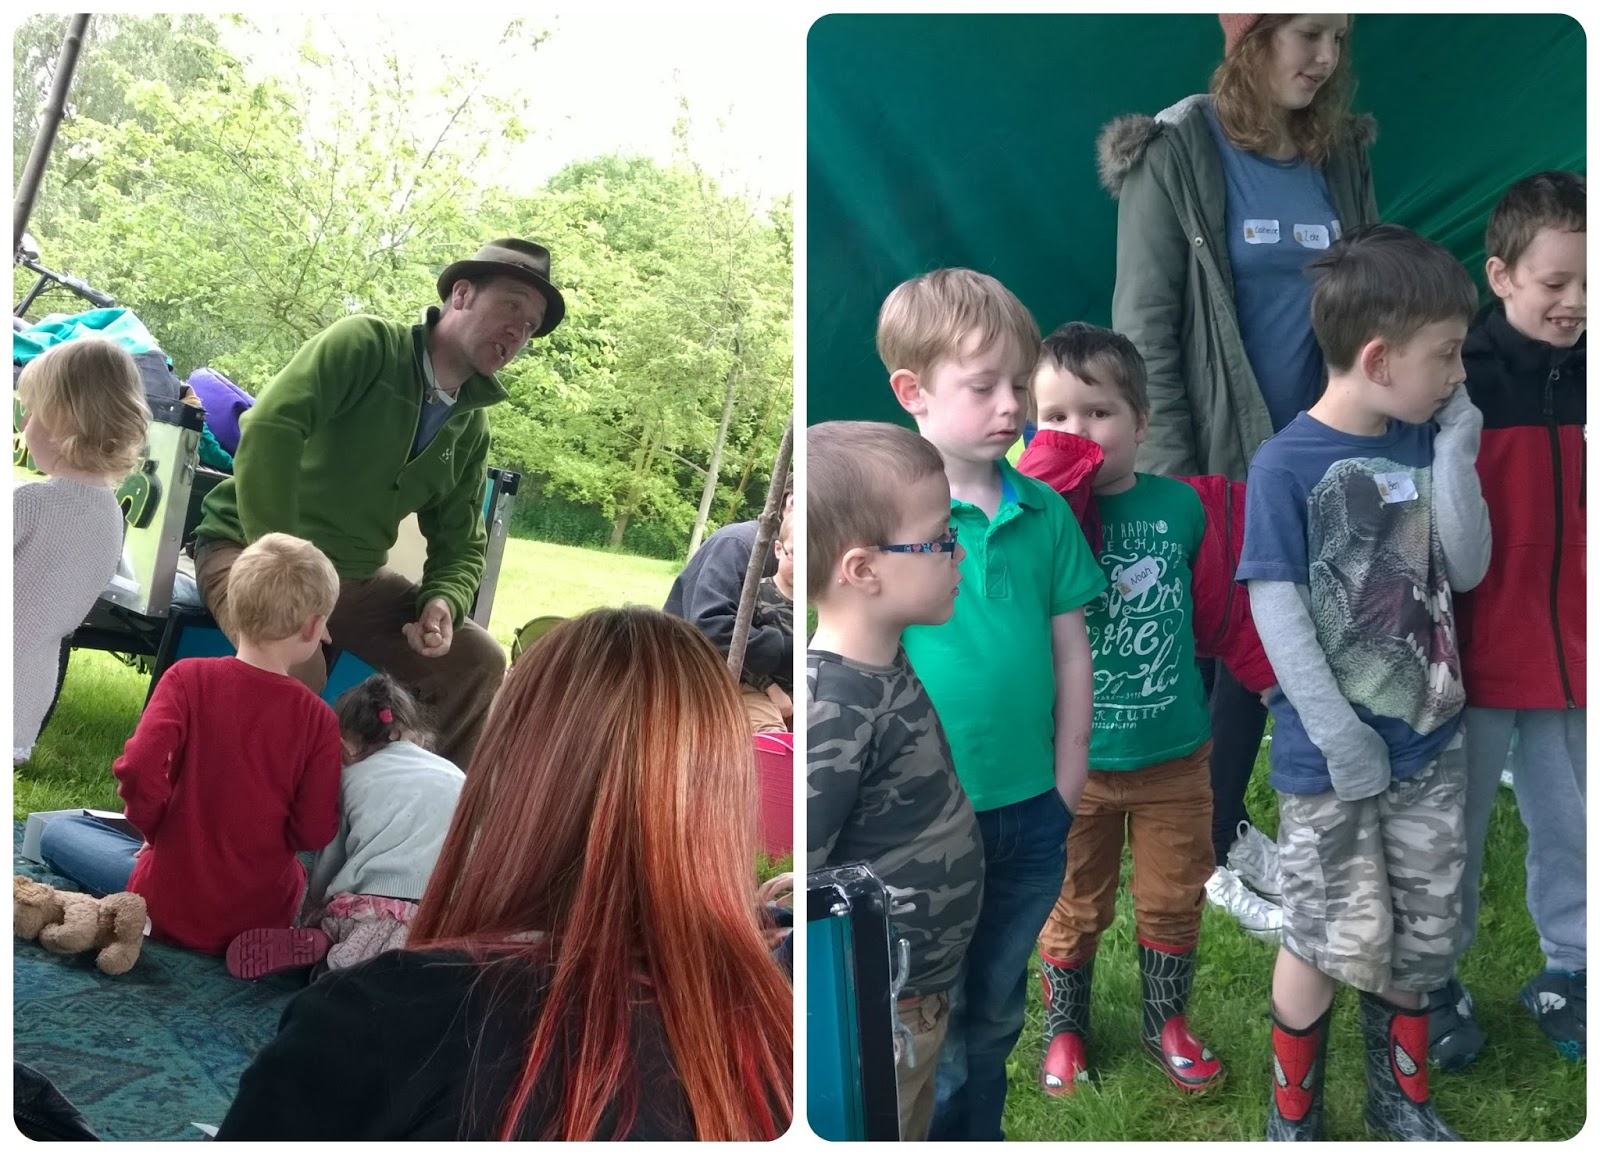 Roberts Bakery 50 Days of Summer Picnic in Delamere Forest Sunshine Sandwich Ian Douglas Storyteller